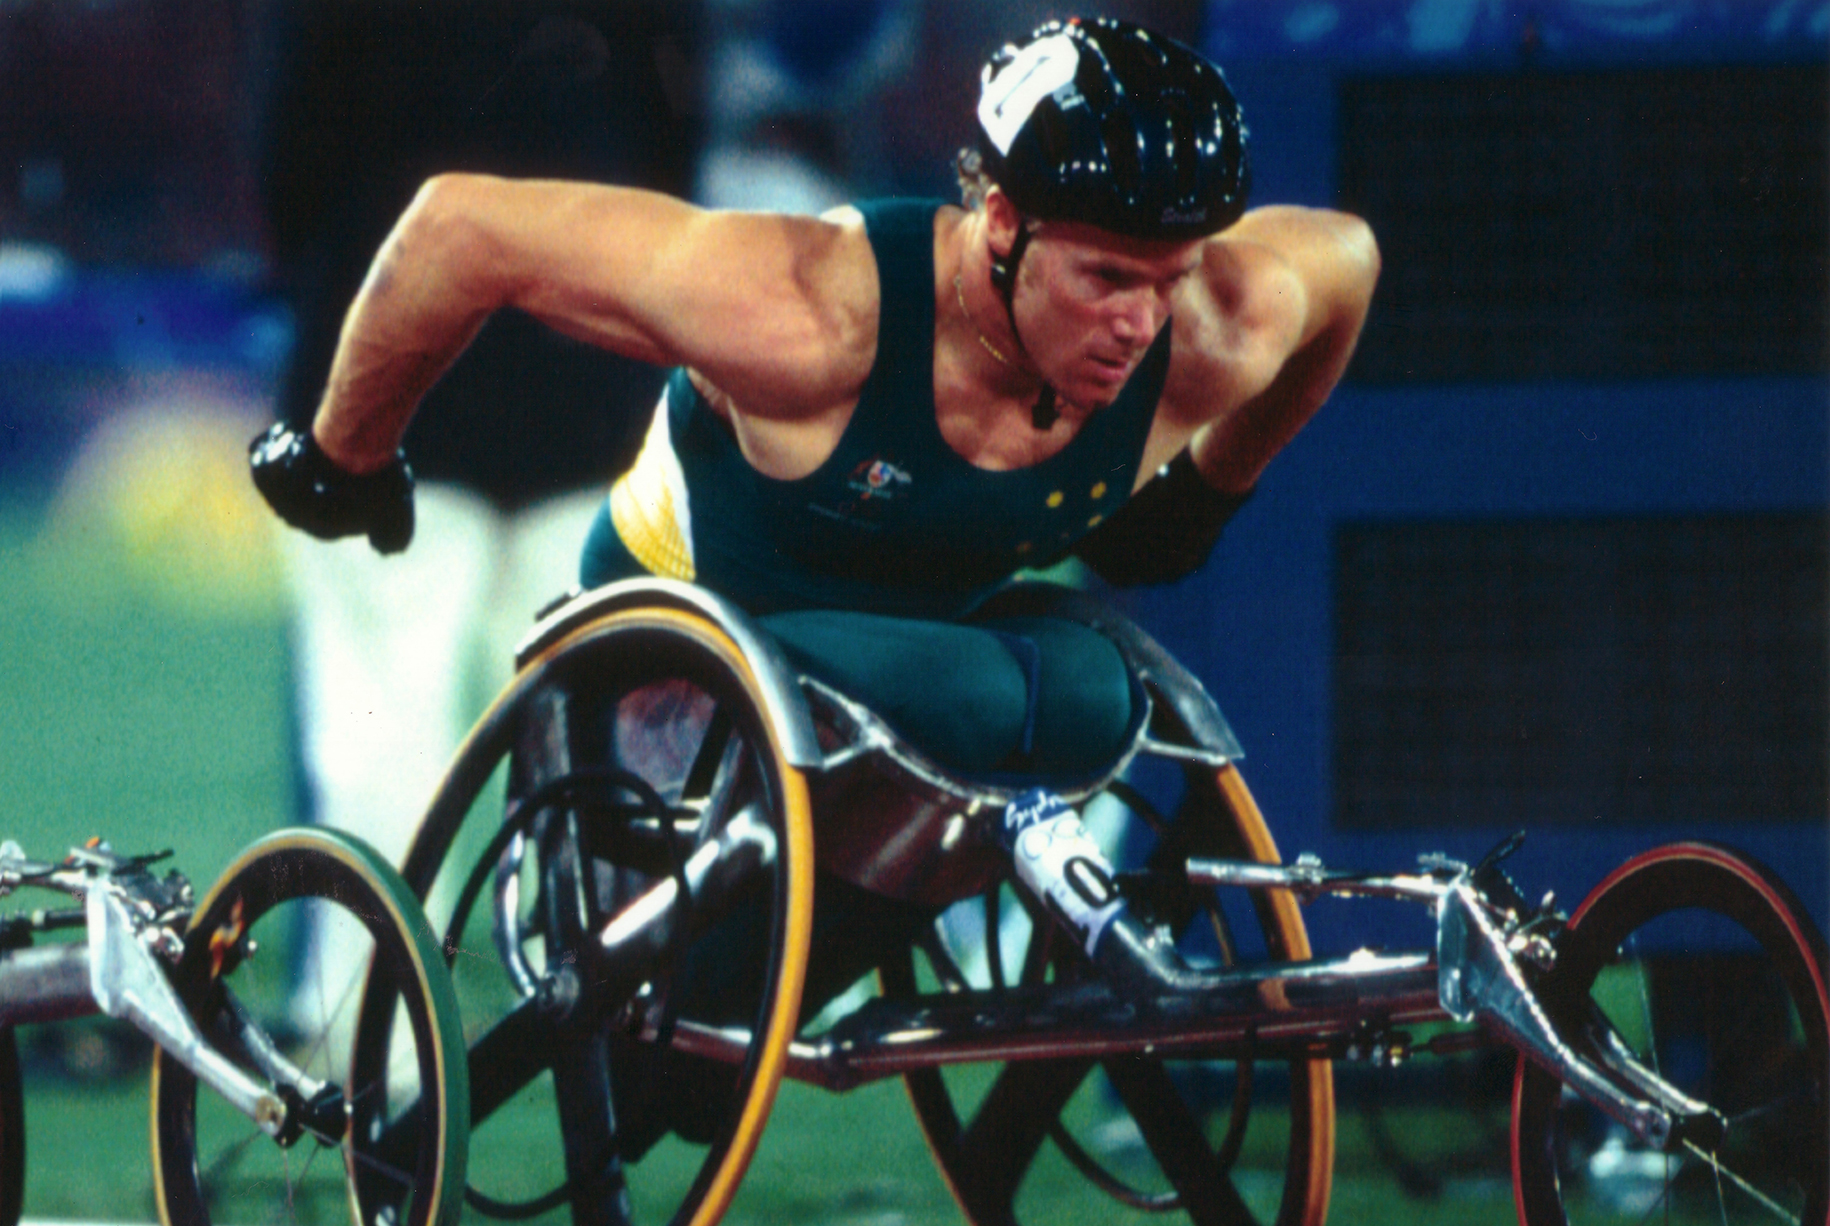 Sydney 2000 Olympic Games - wheelchair racing demonstration event